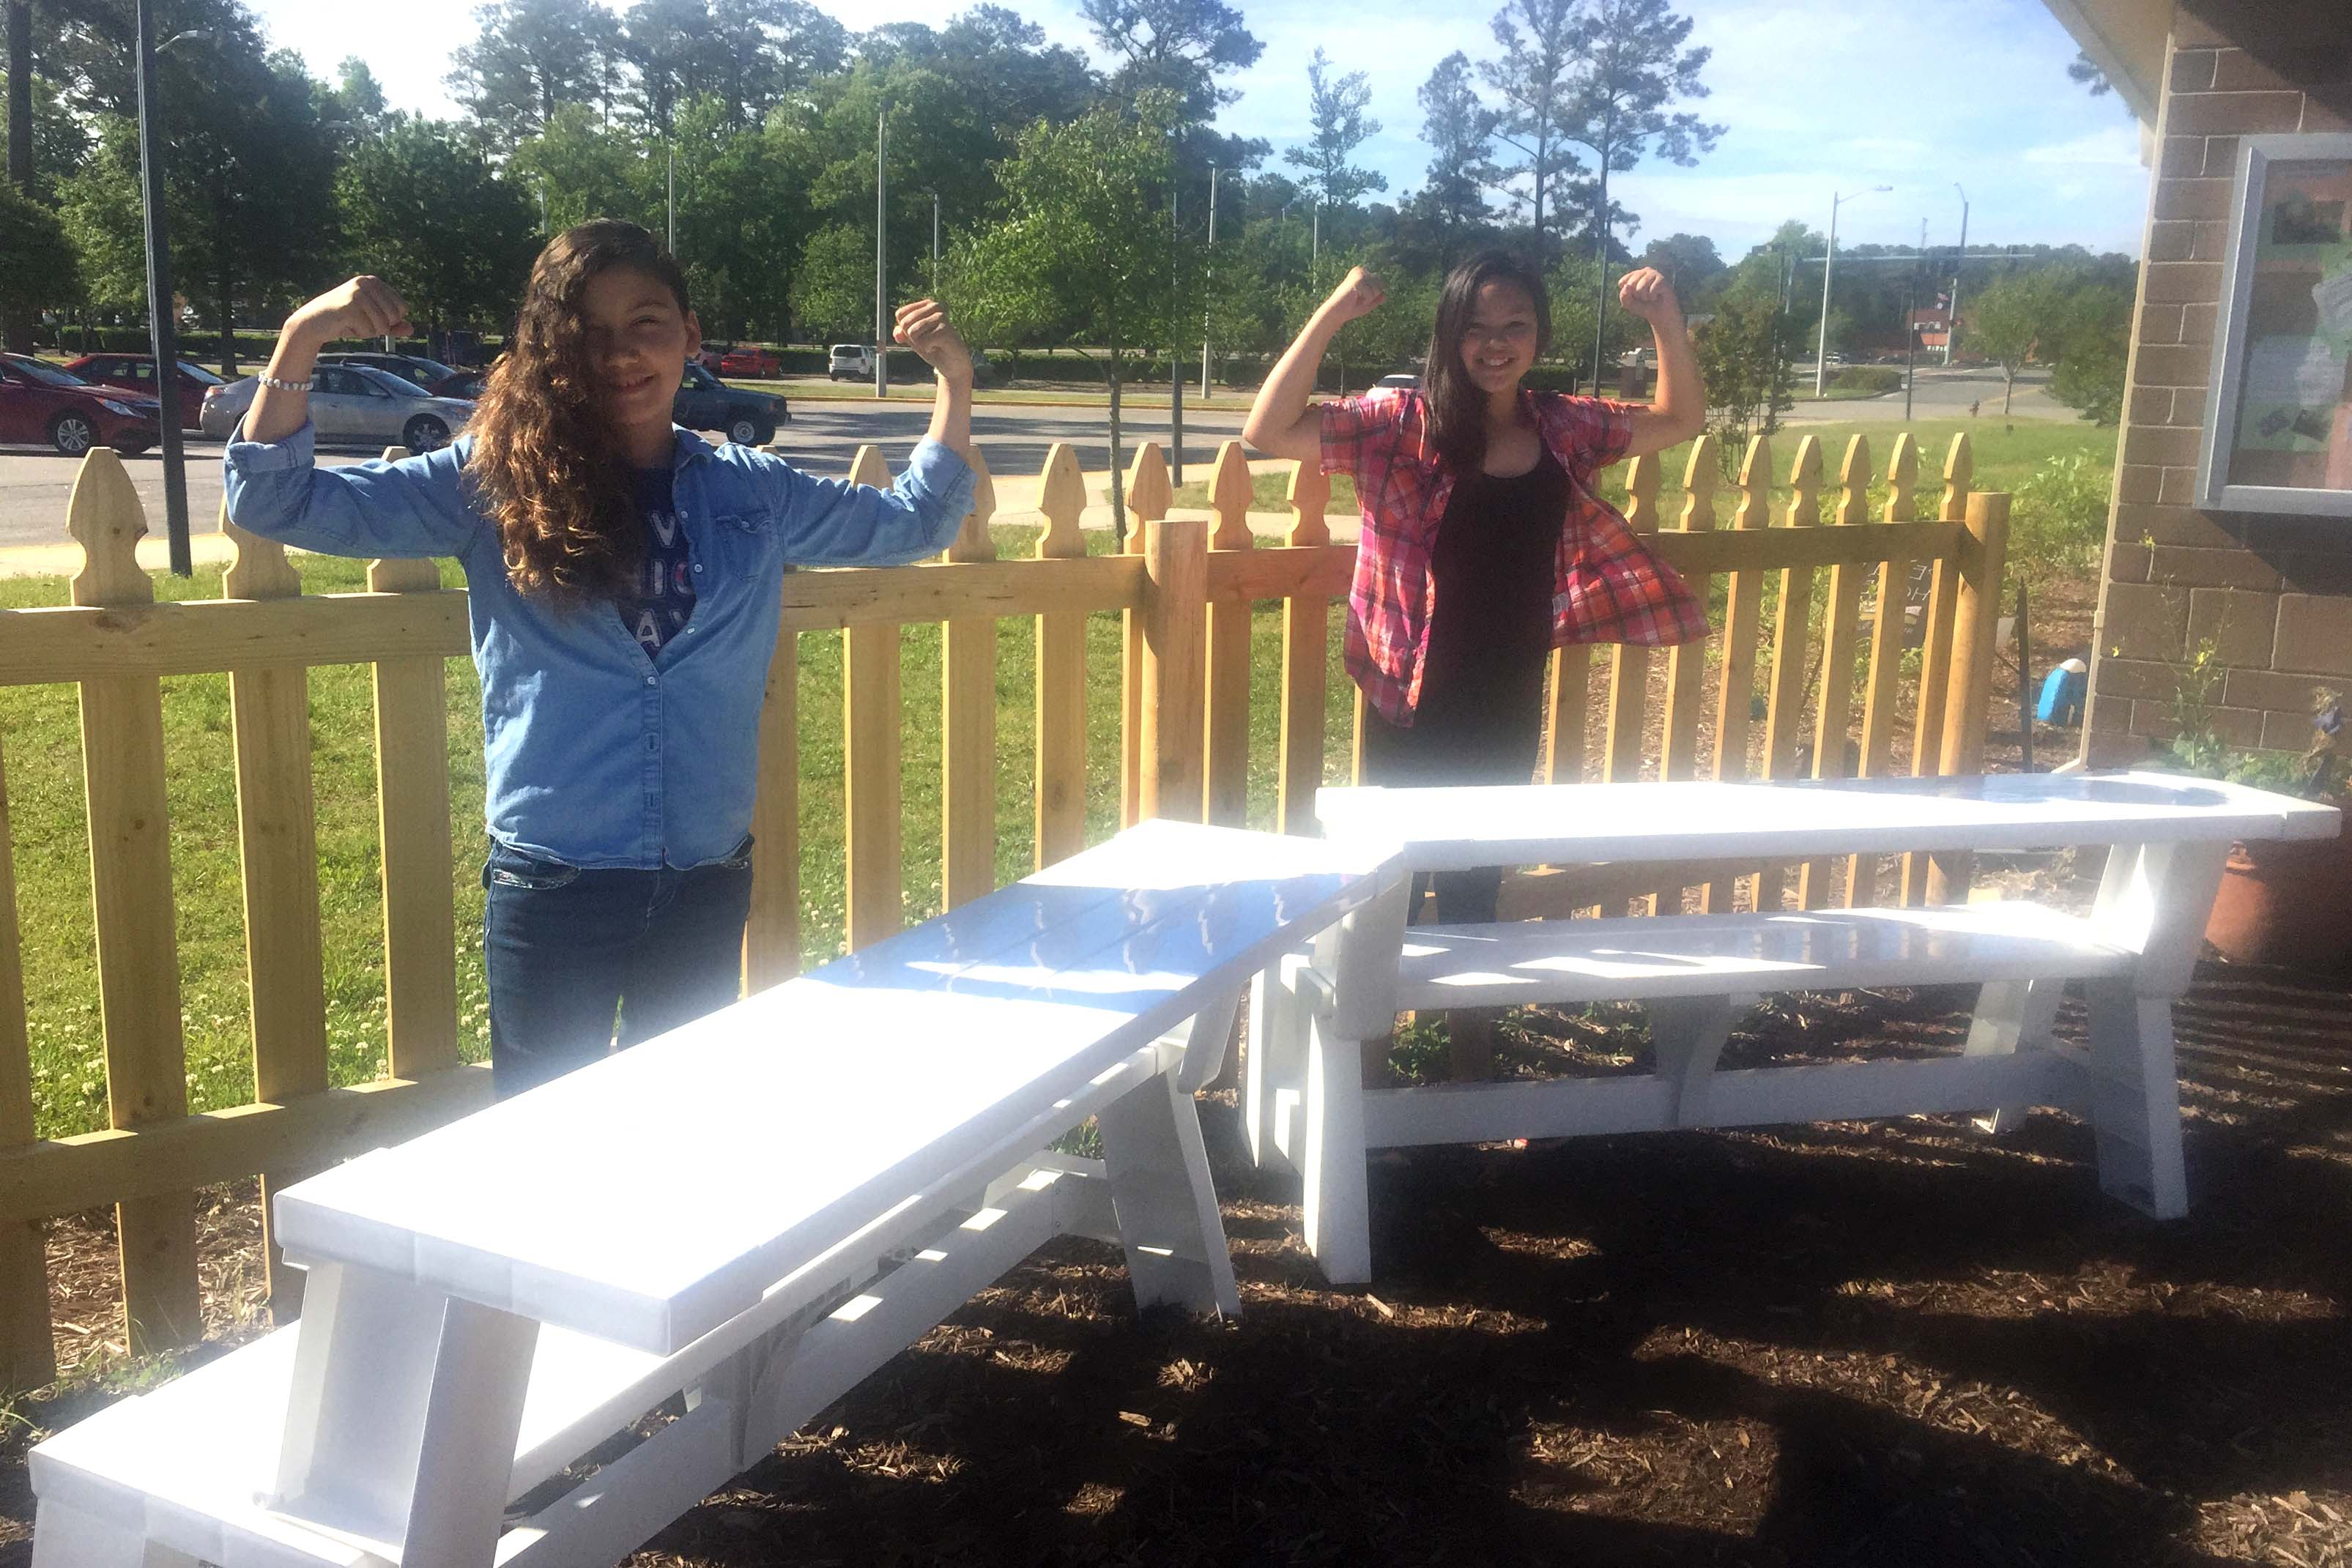 Ramirezhuezo and Coss stand by the benches they assembled.